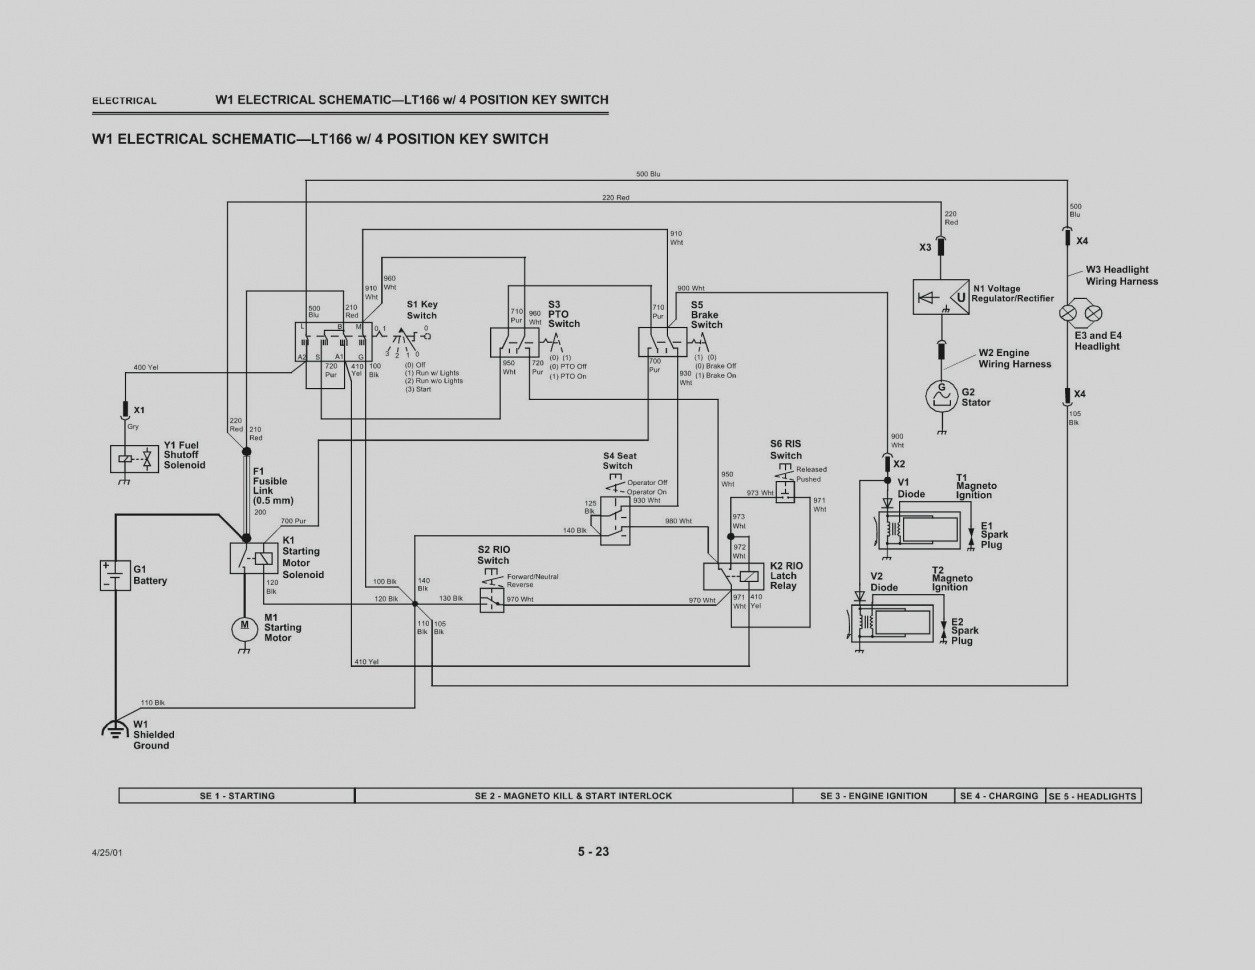 5915a5 a1d69 gator cx wiring diagram | digital resources | wiring library  wiring library